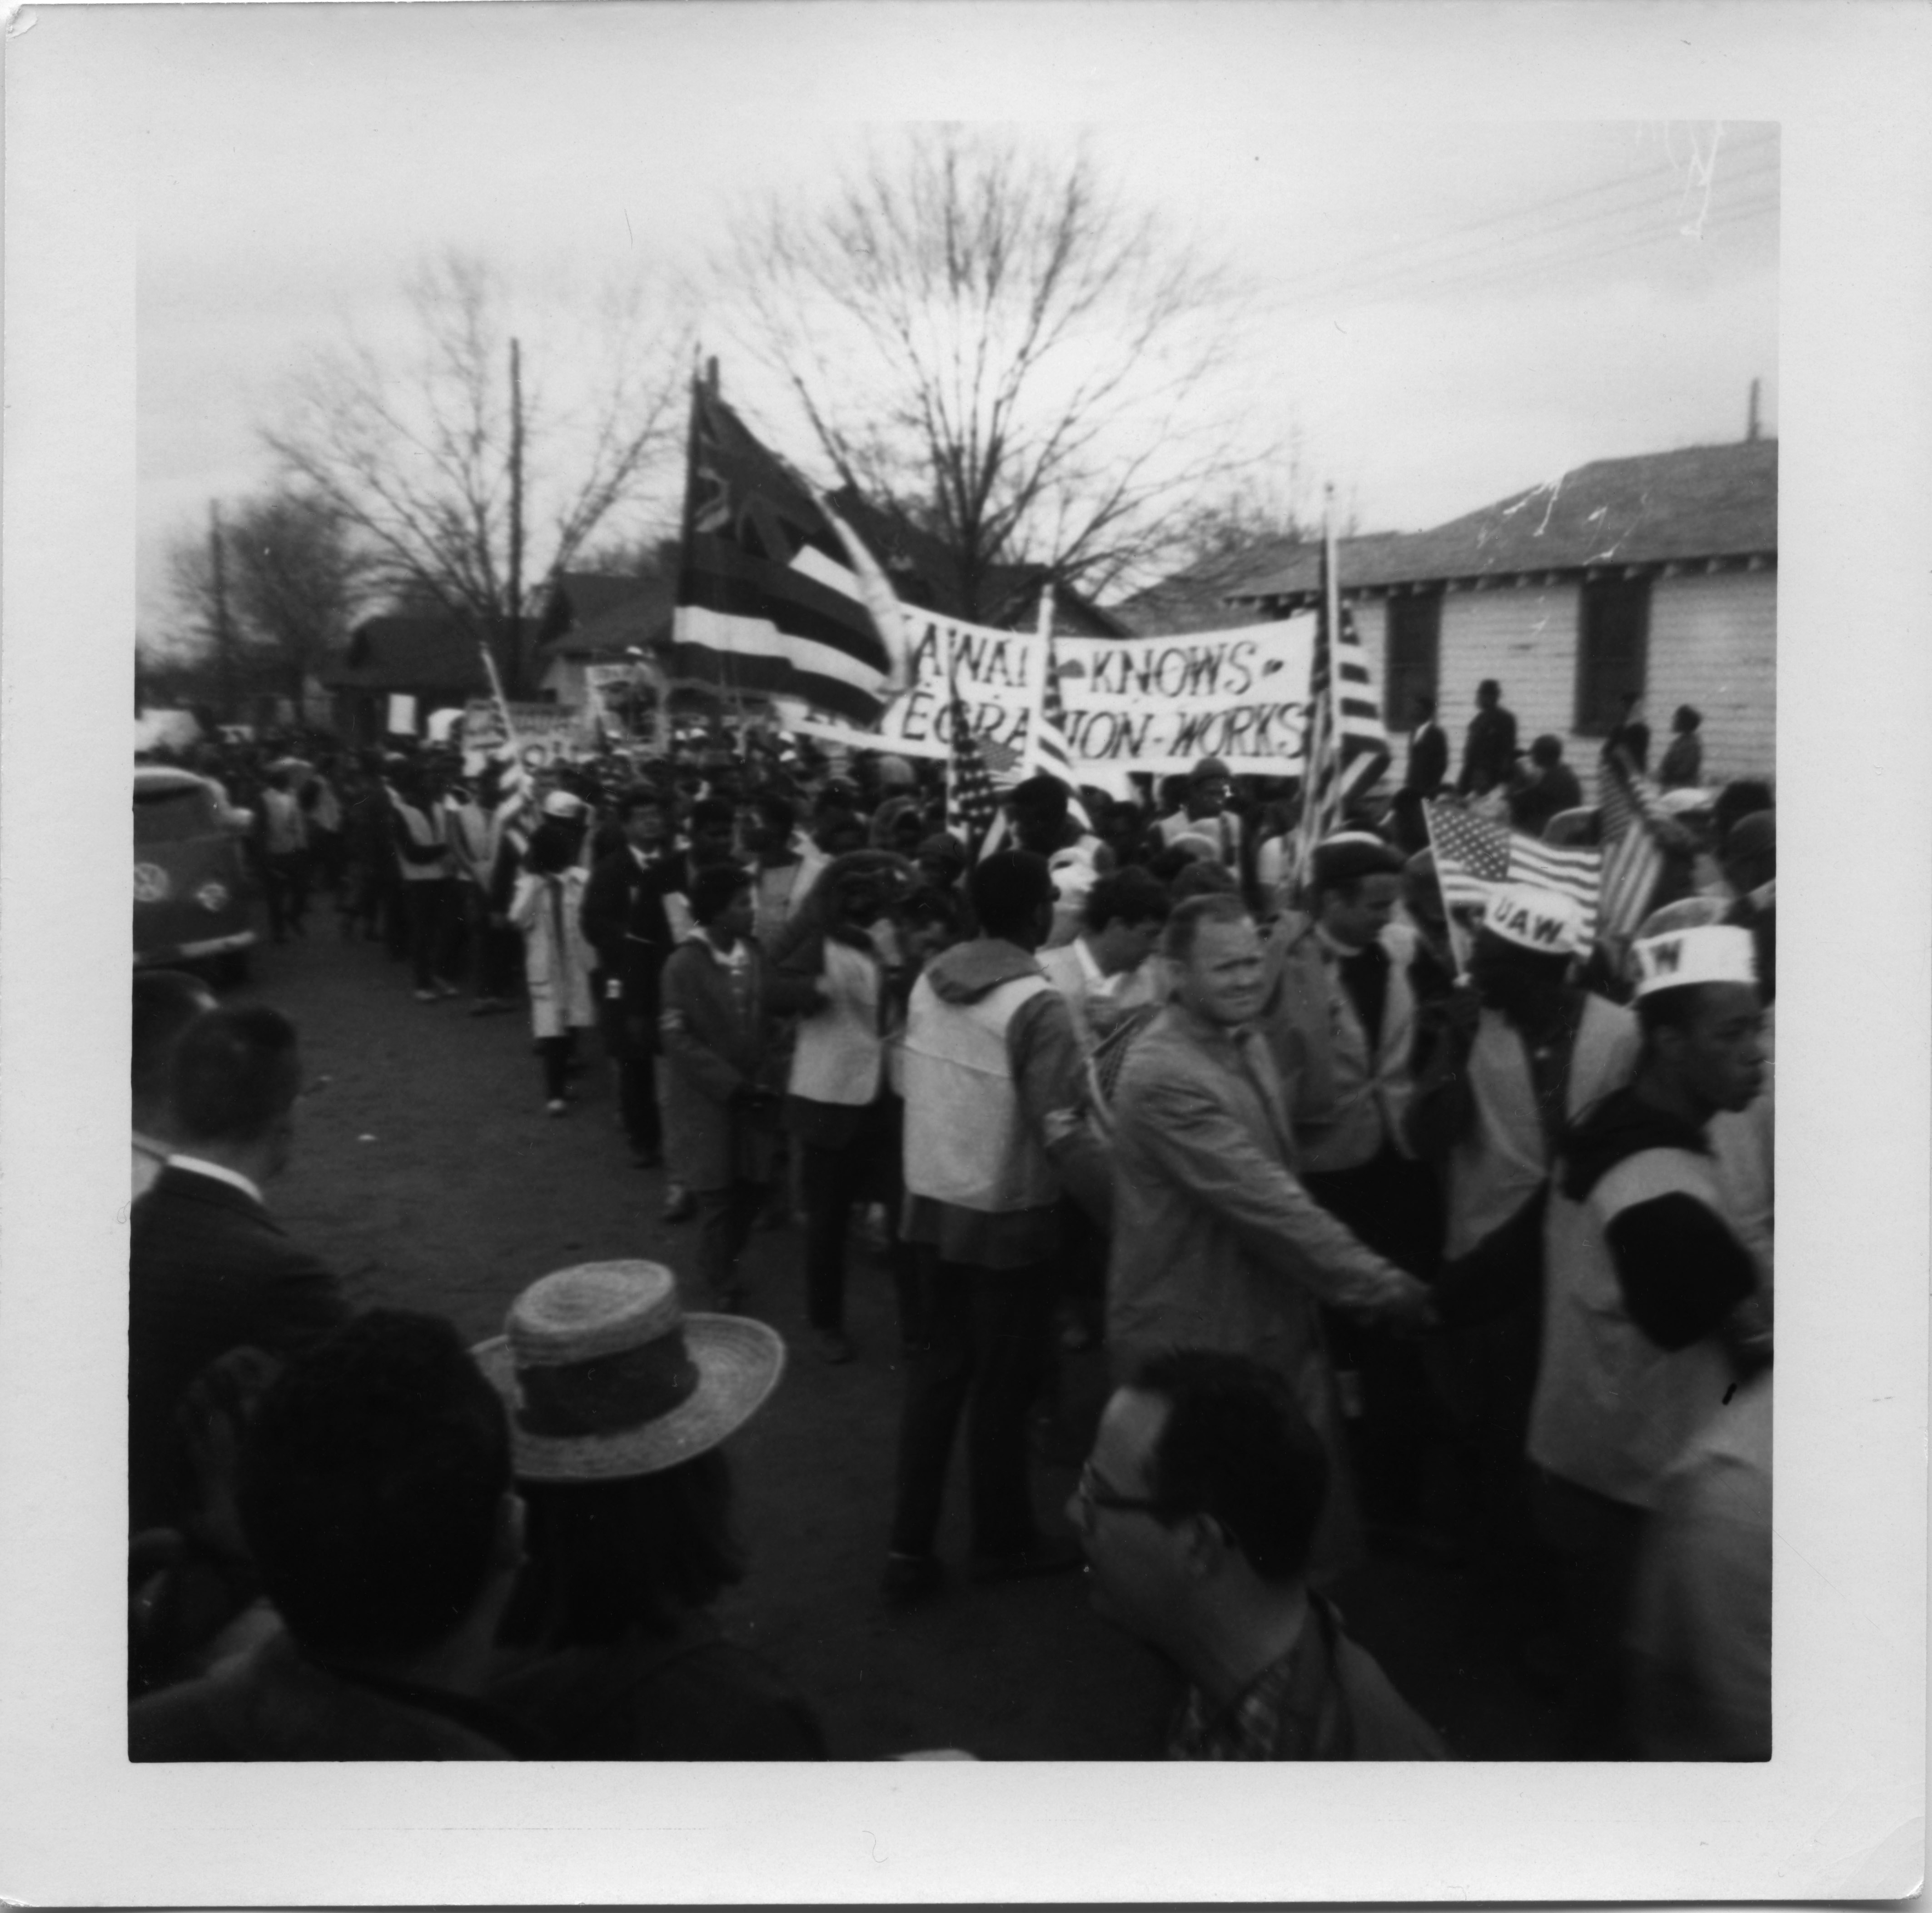 Civil rights march from Selma to Montgomery, Ala., March 1965